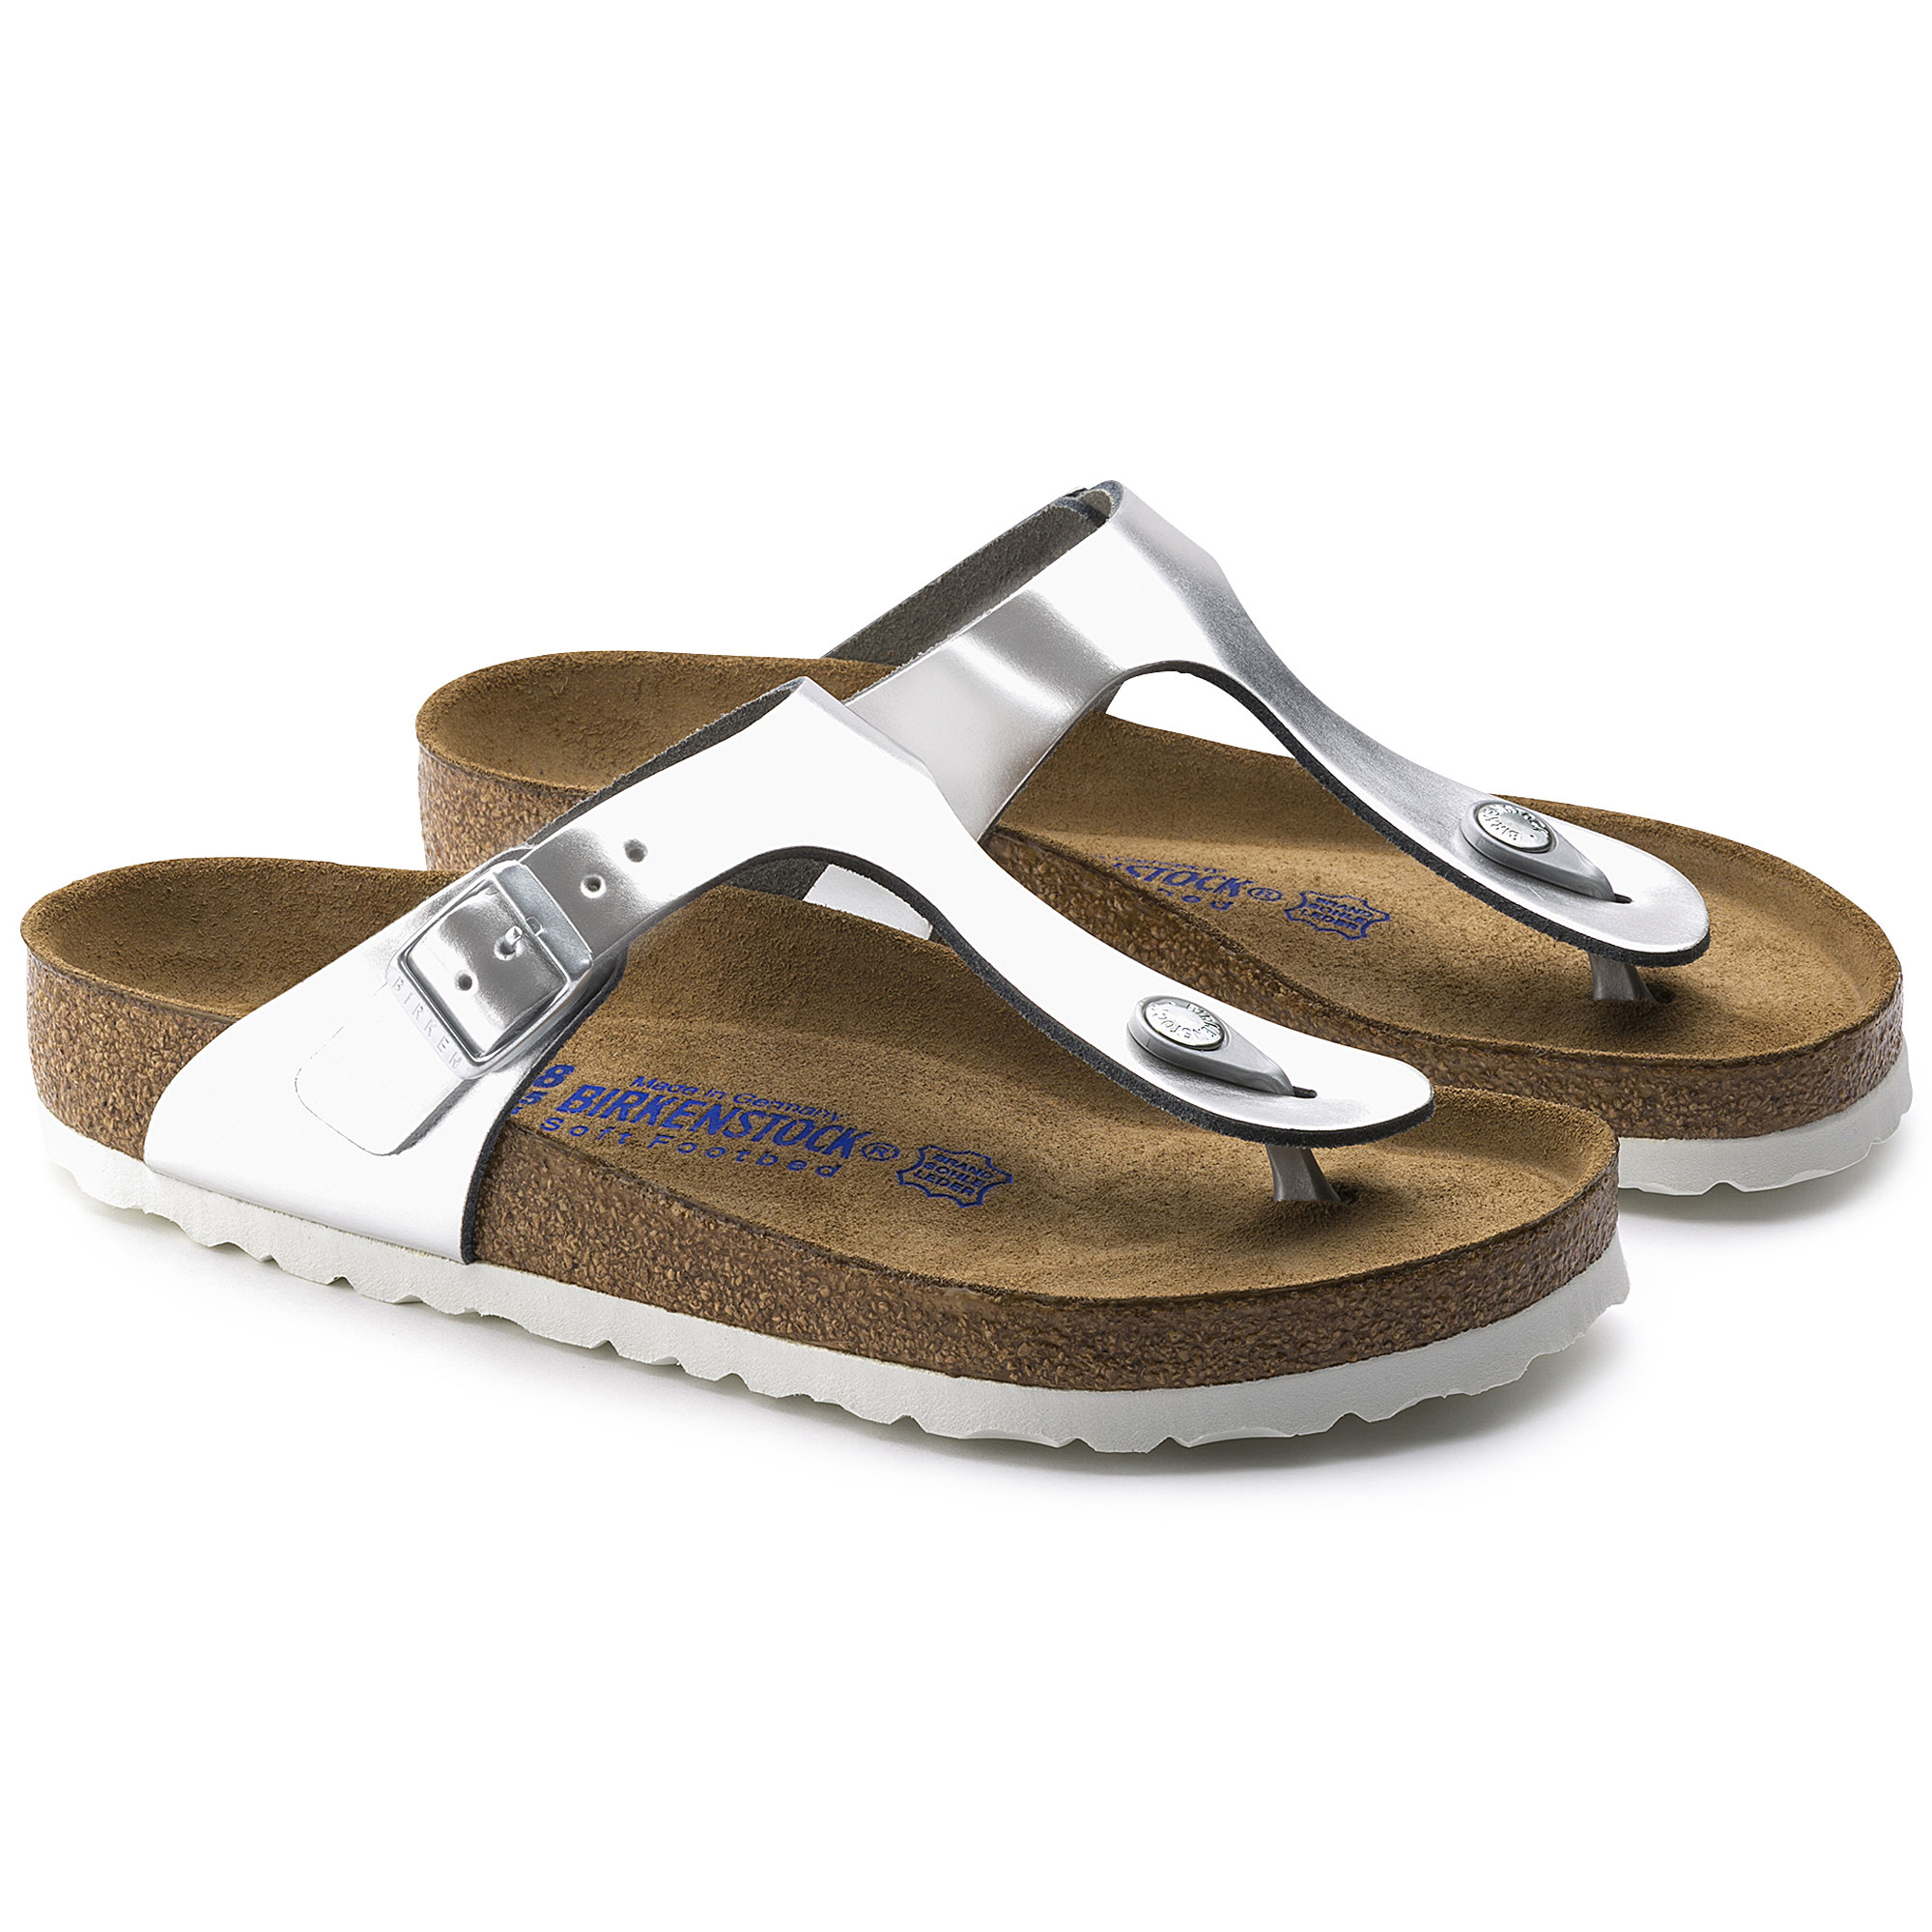 Gizeh Natural Leather Metallic Silver